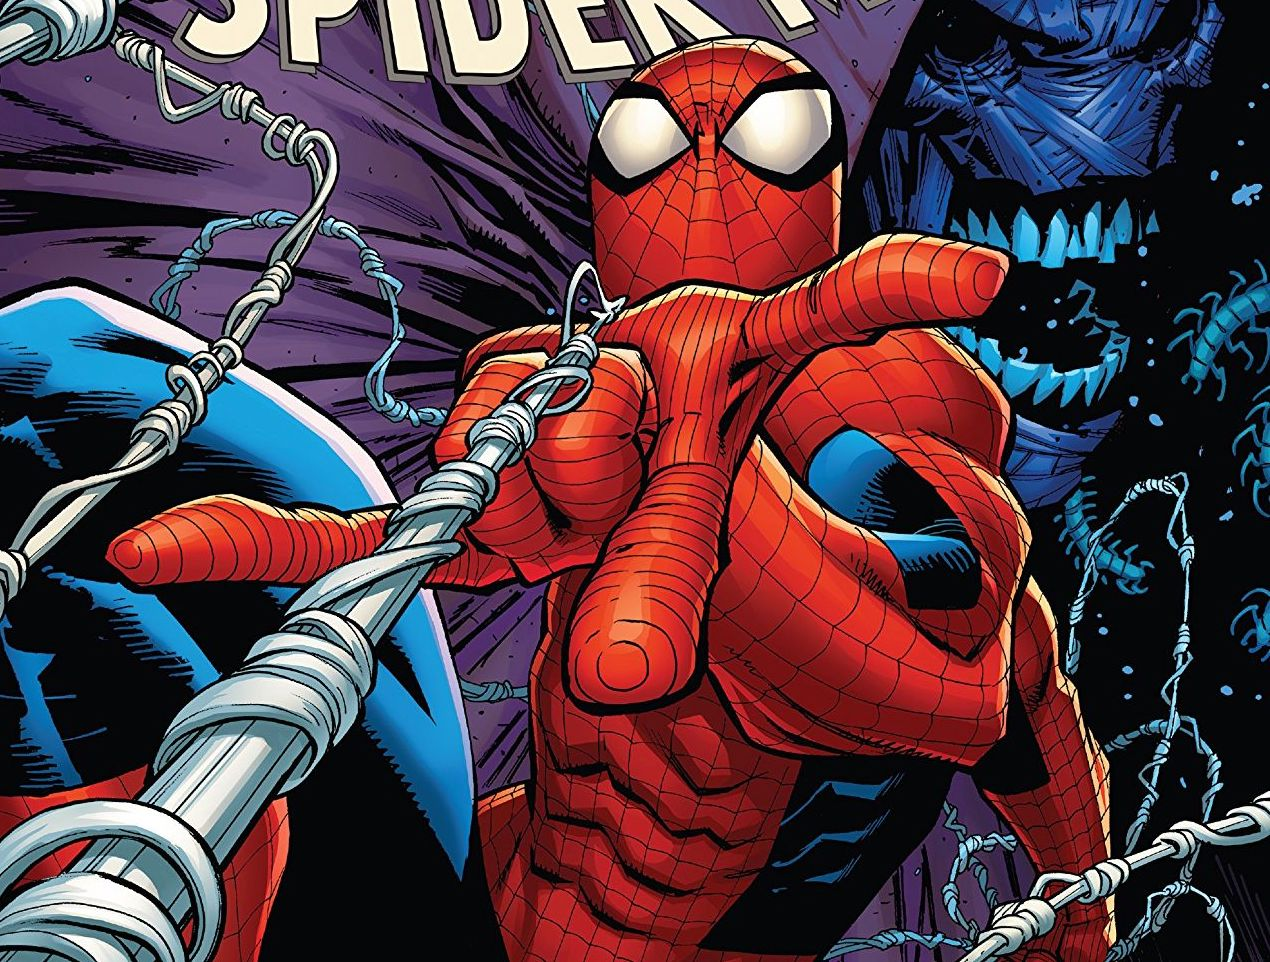 The Amazing Spider-Man #24 review